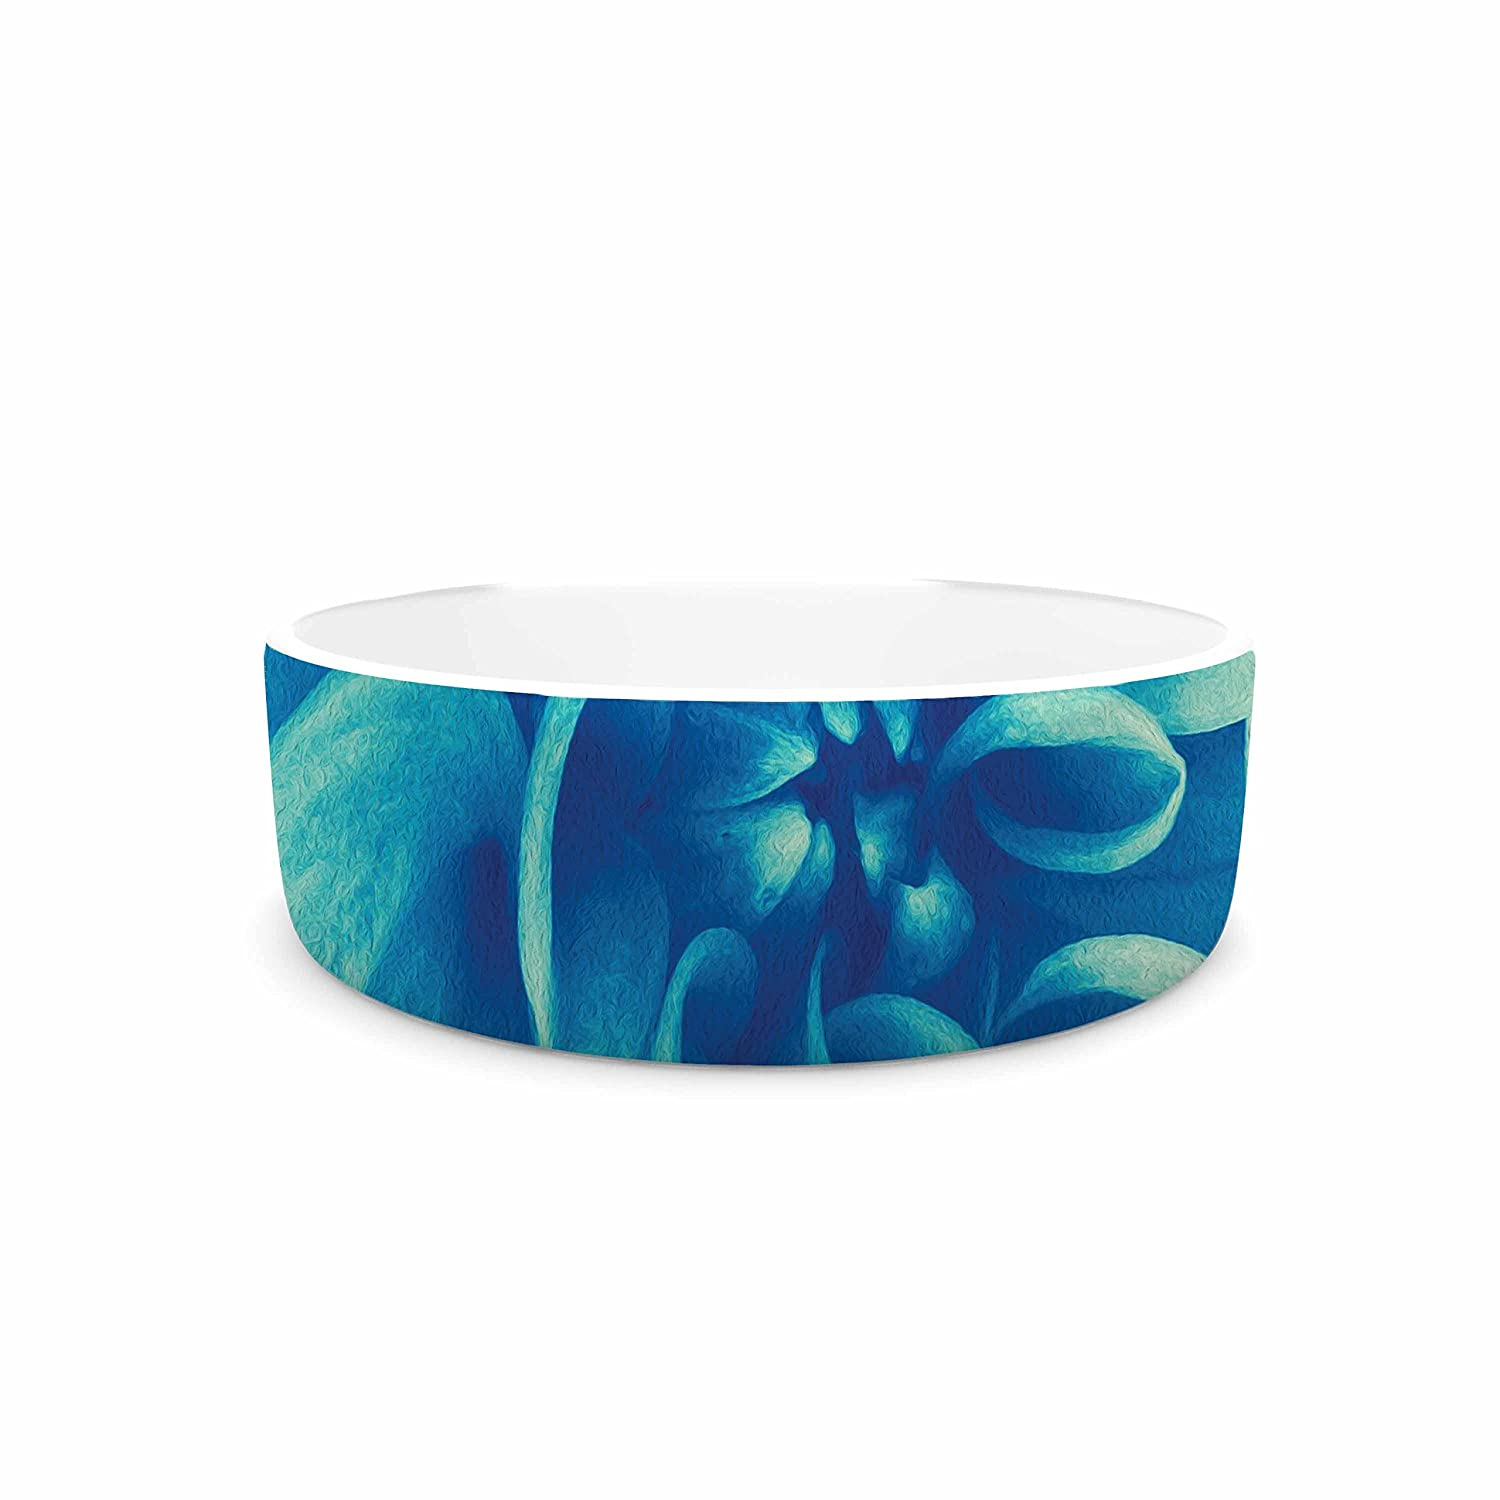 7\ KESS InHouse Graphic Tabby bluee Beauty  Teal Floral Pet Bowl, 7